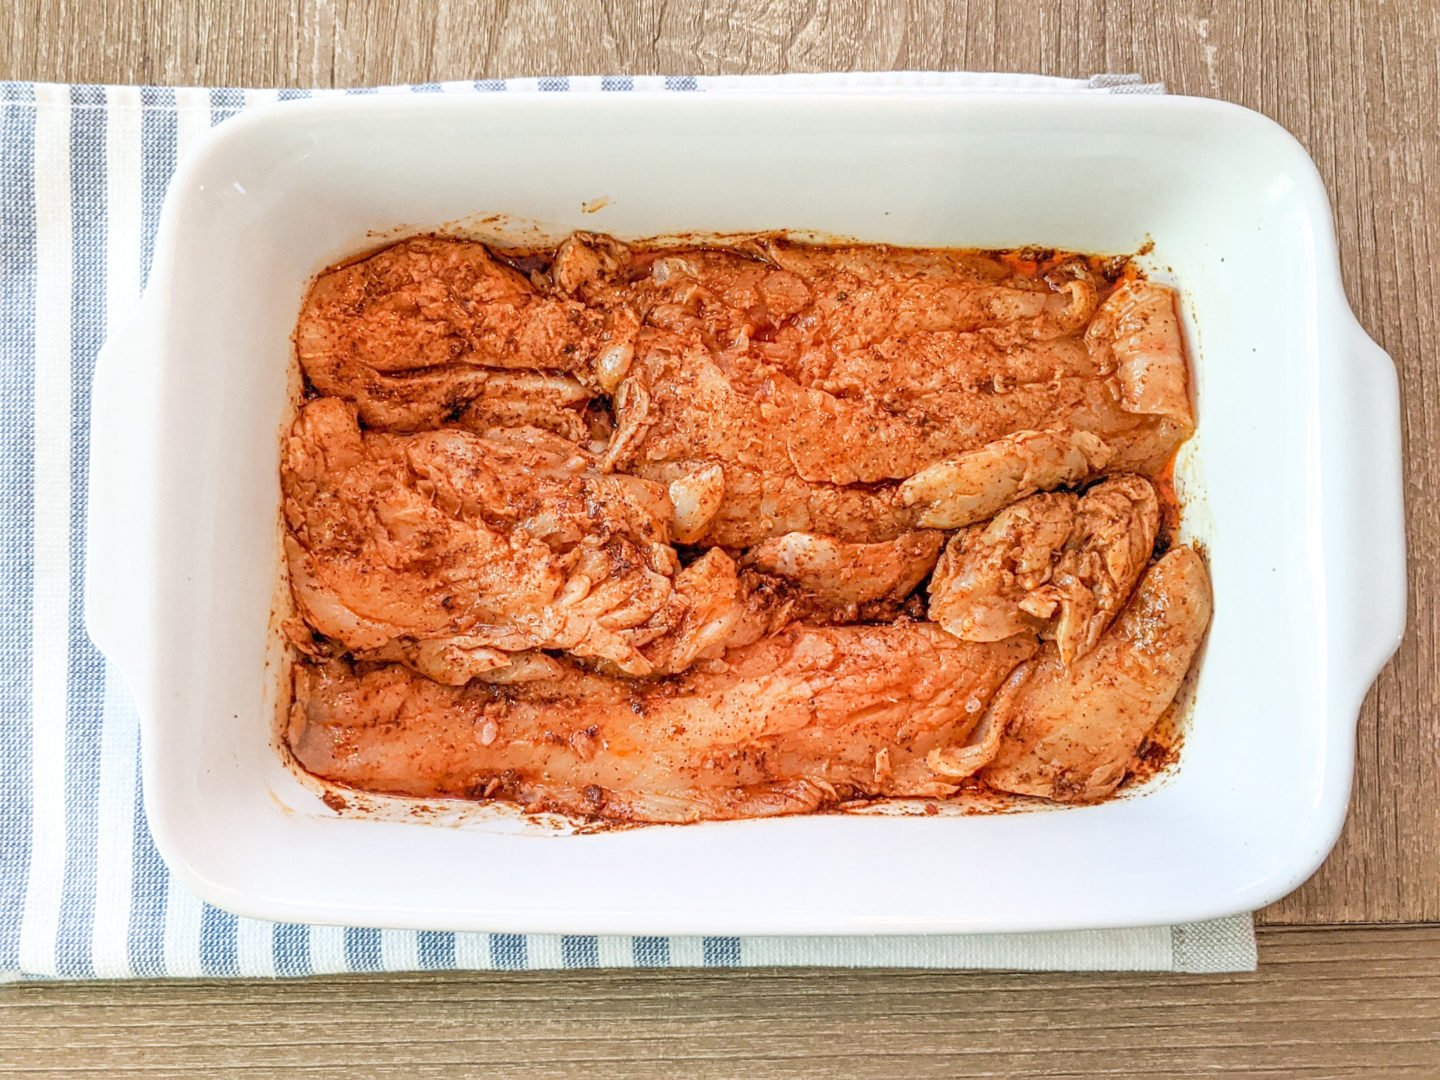 Marinate the fish for 20-30 mins.